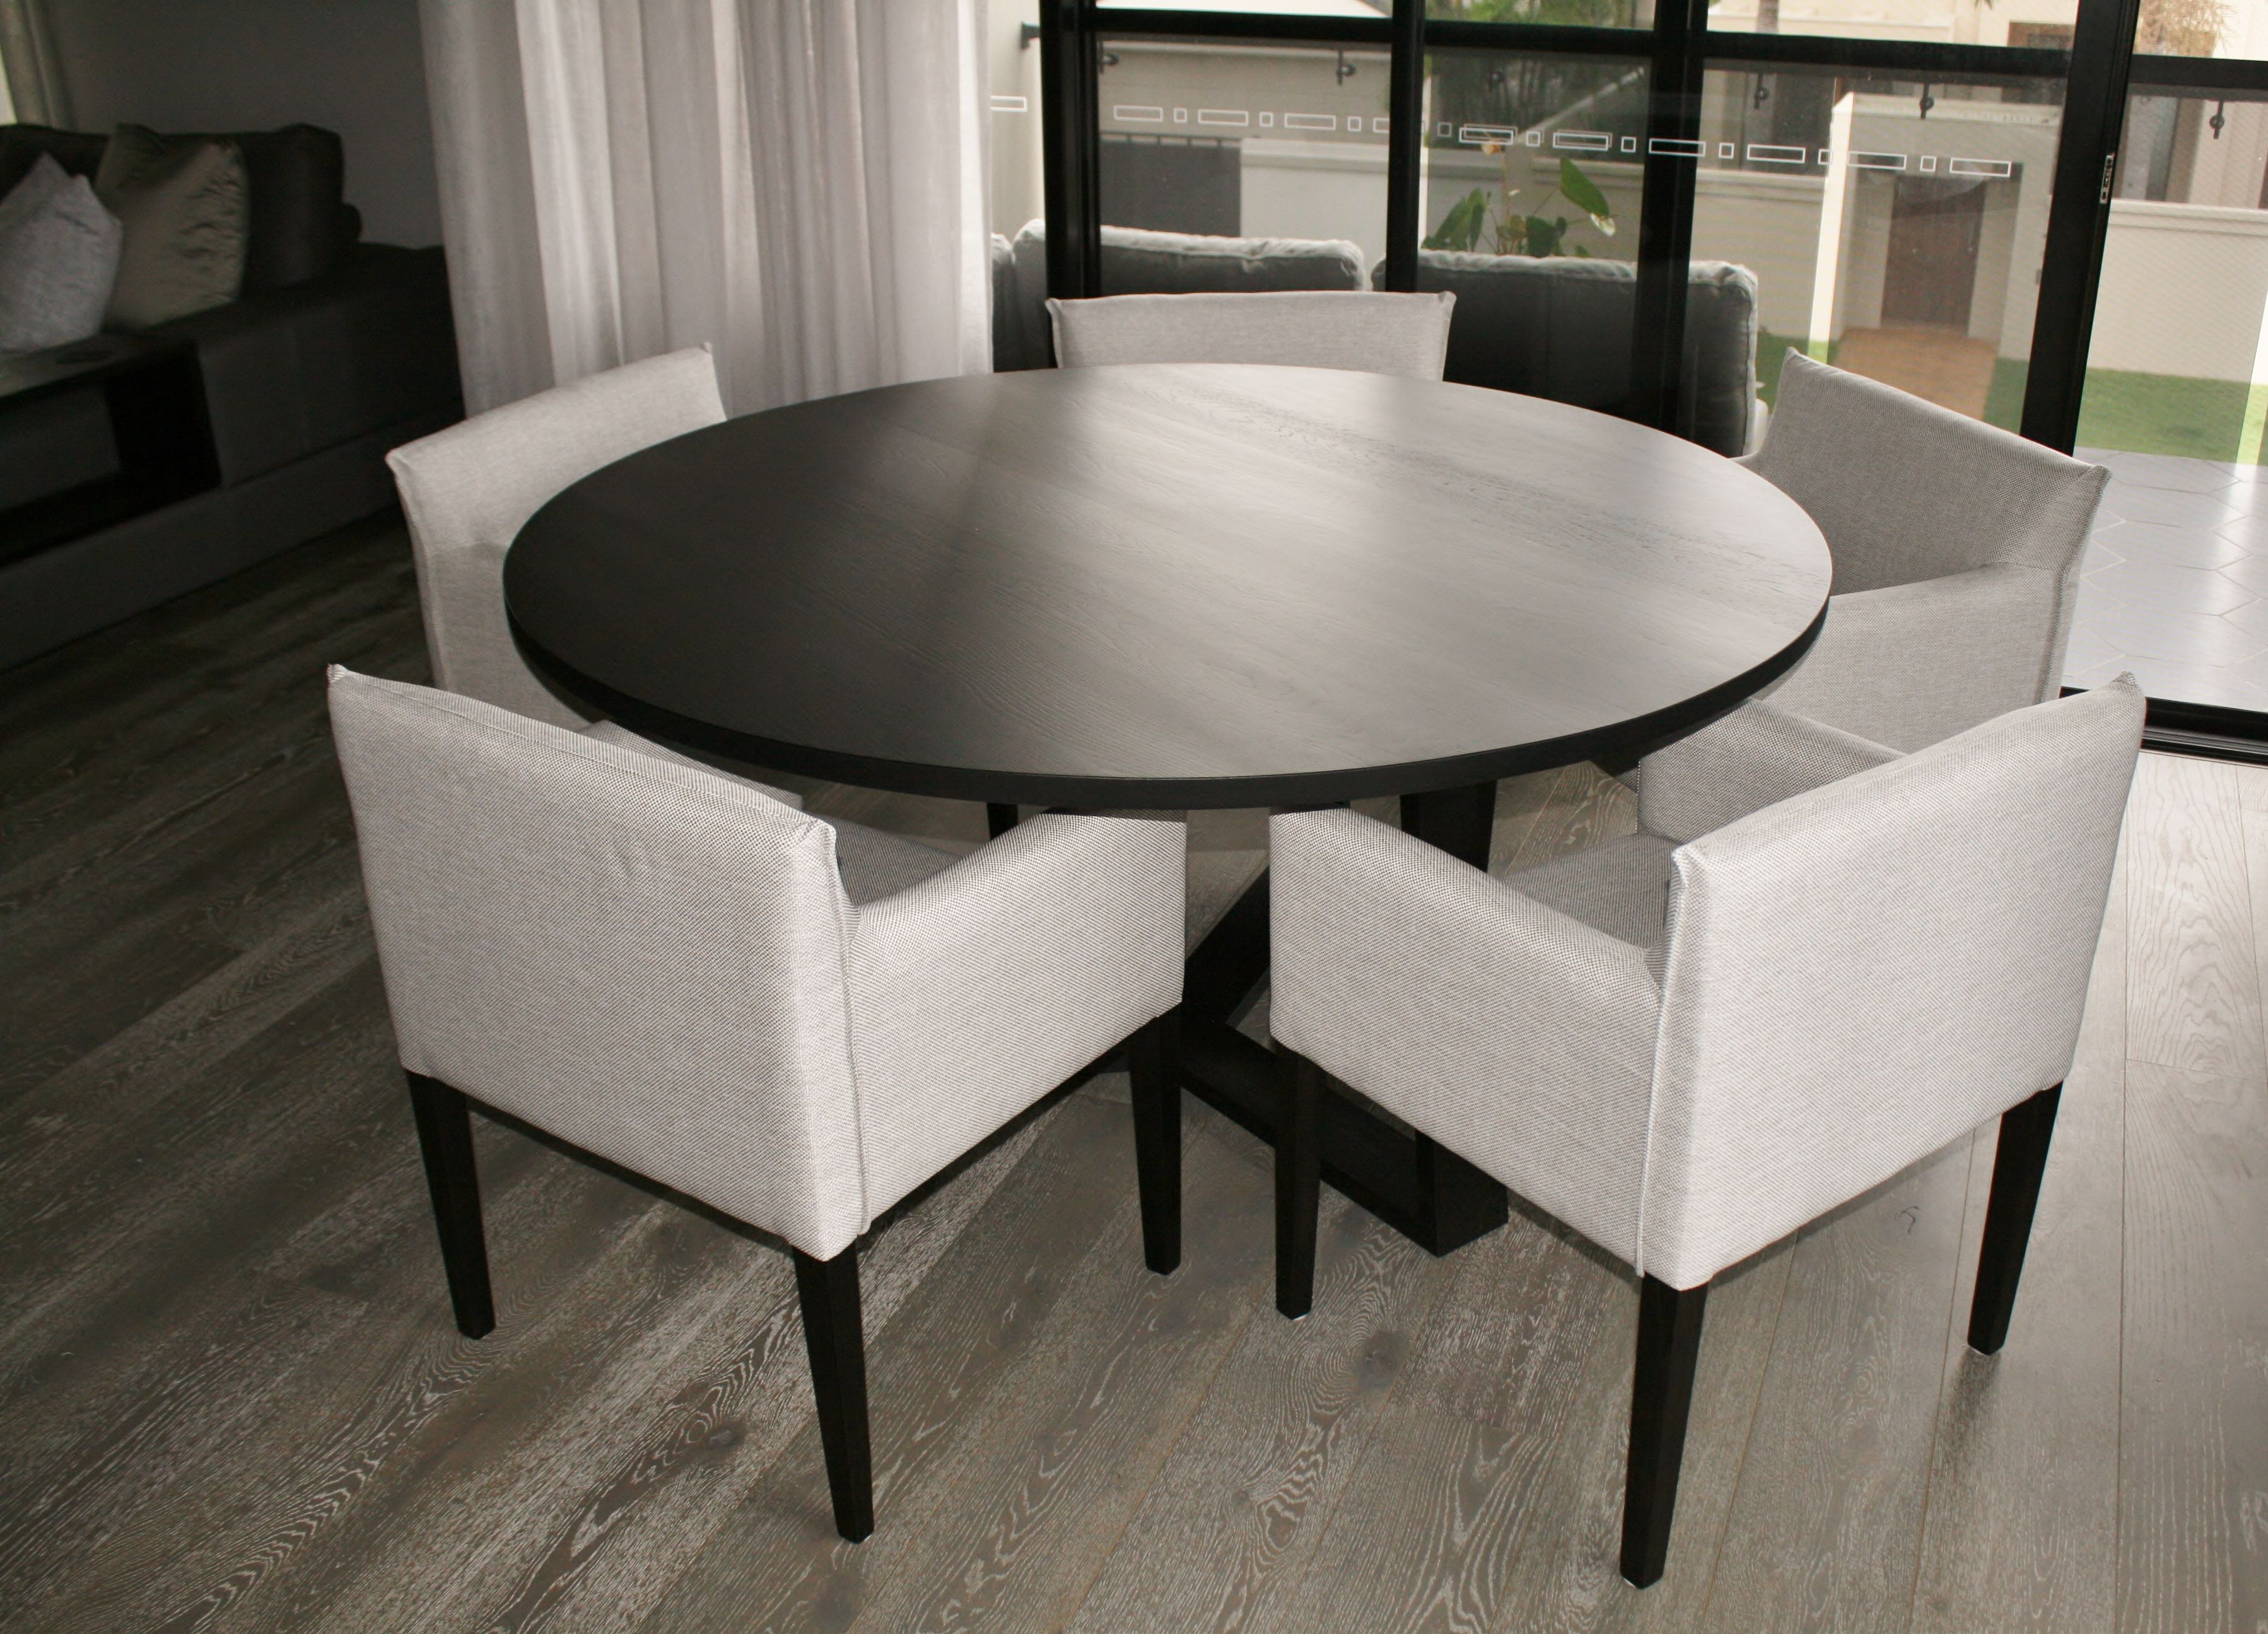 Pure dining table finished in black japan by rzid interiors www rzid com